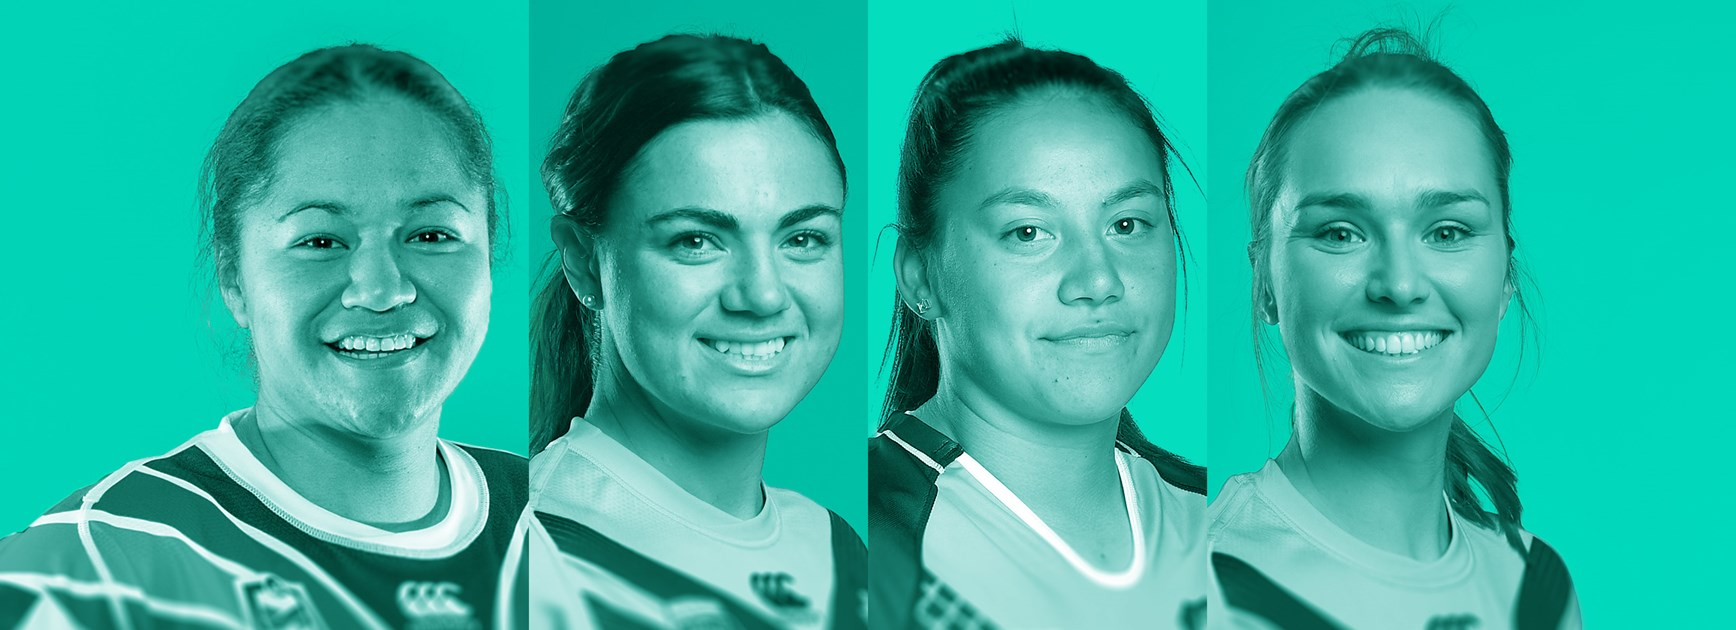 Meet the new crop of stars set to light up NRLW 2019